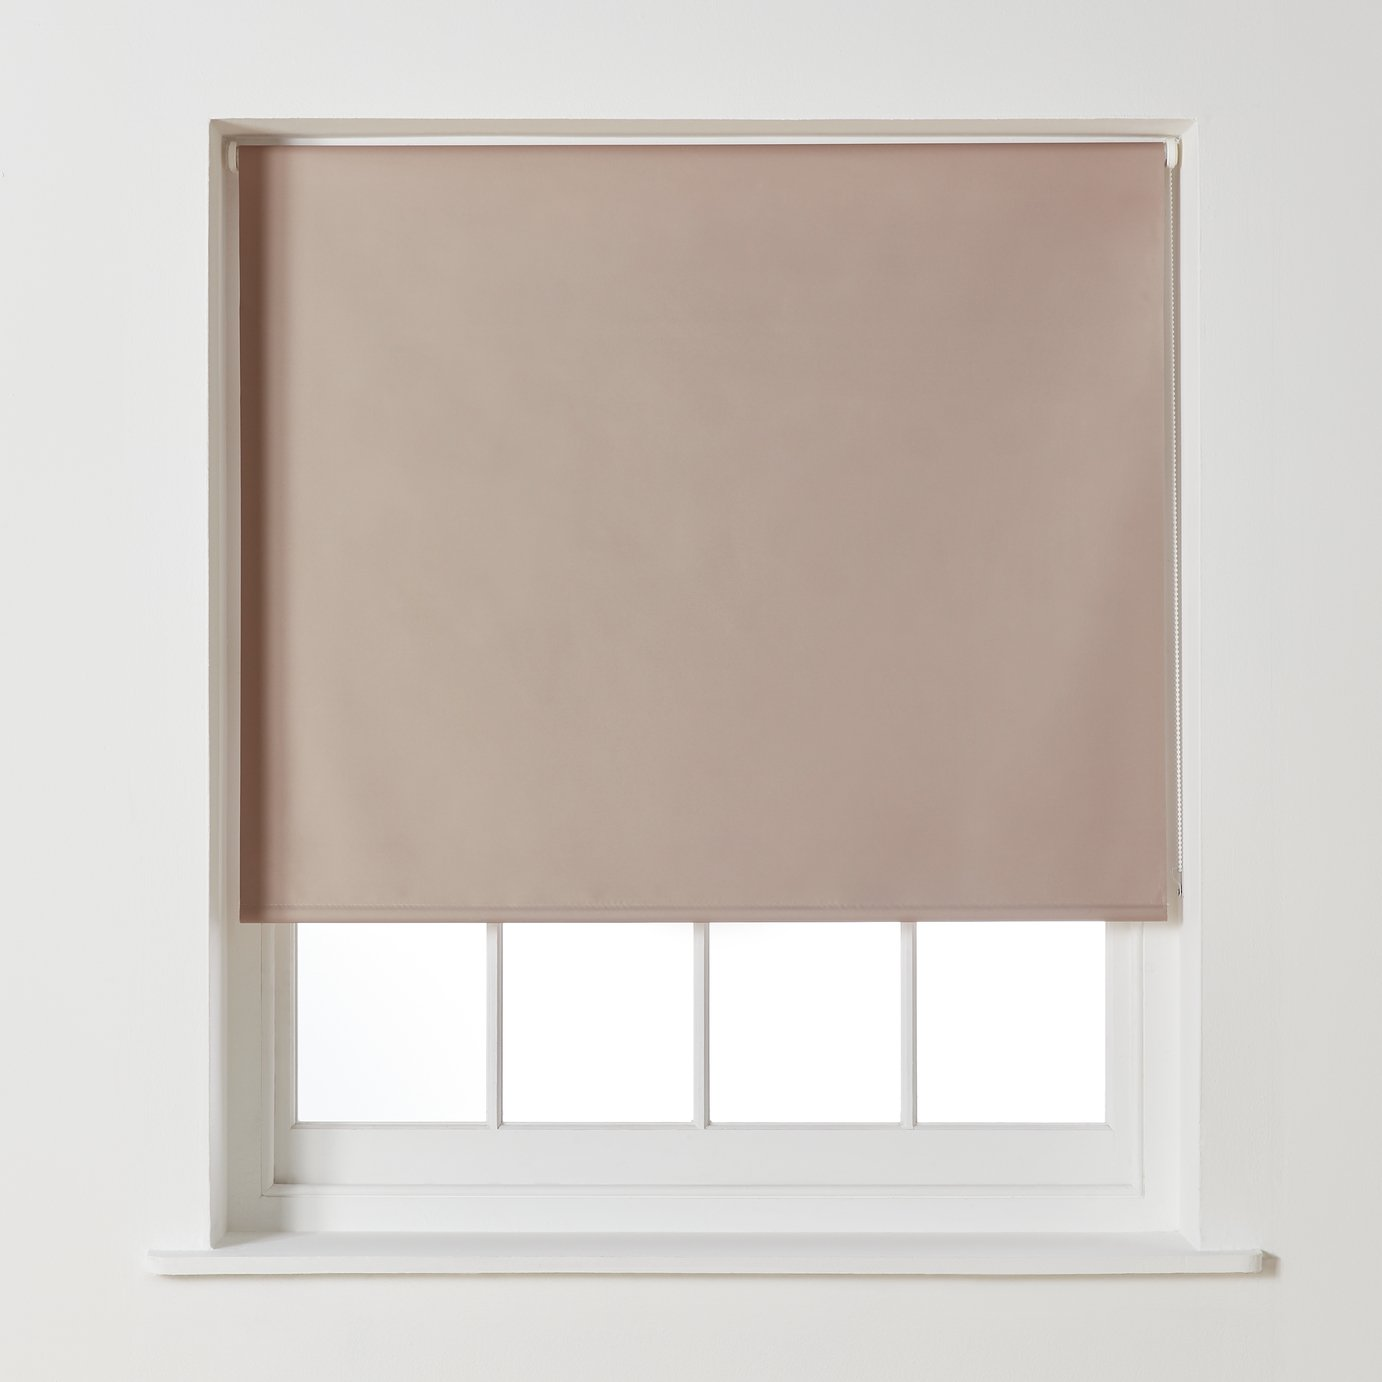 Argos Home Blackout Roller Blind - 5ft - Mocha